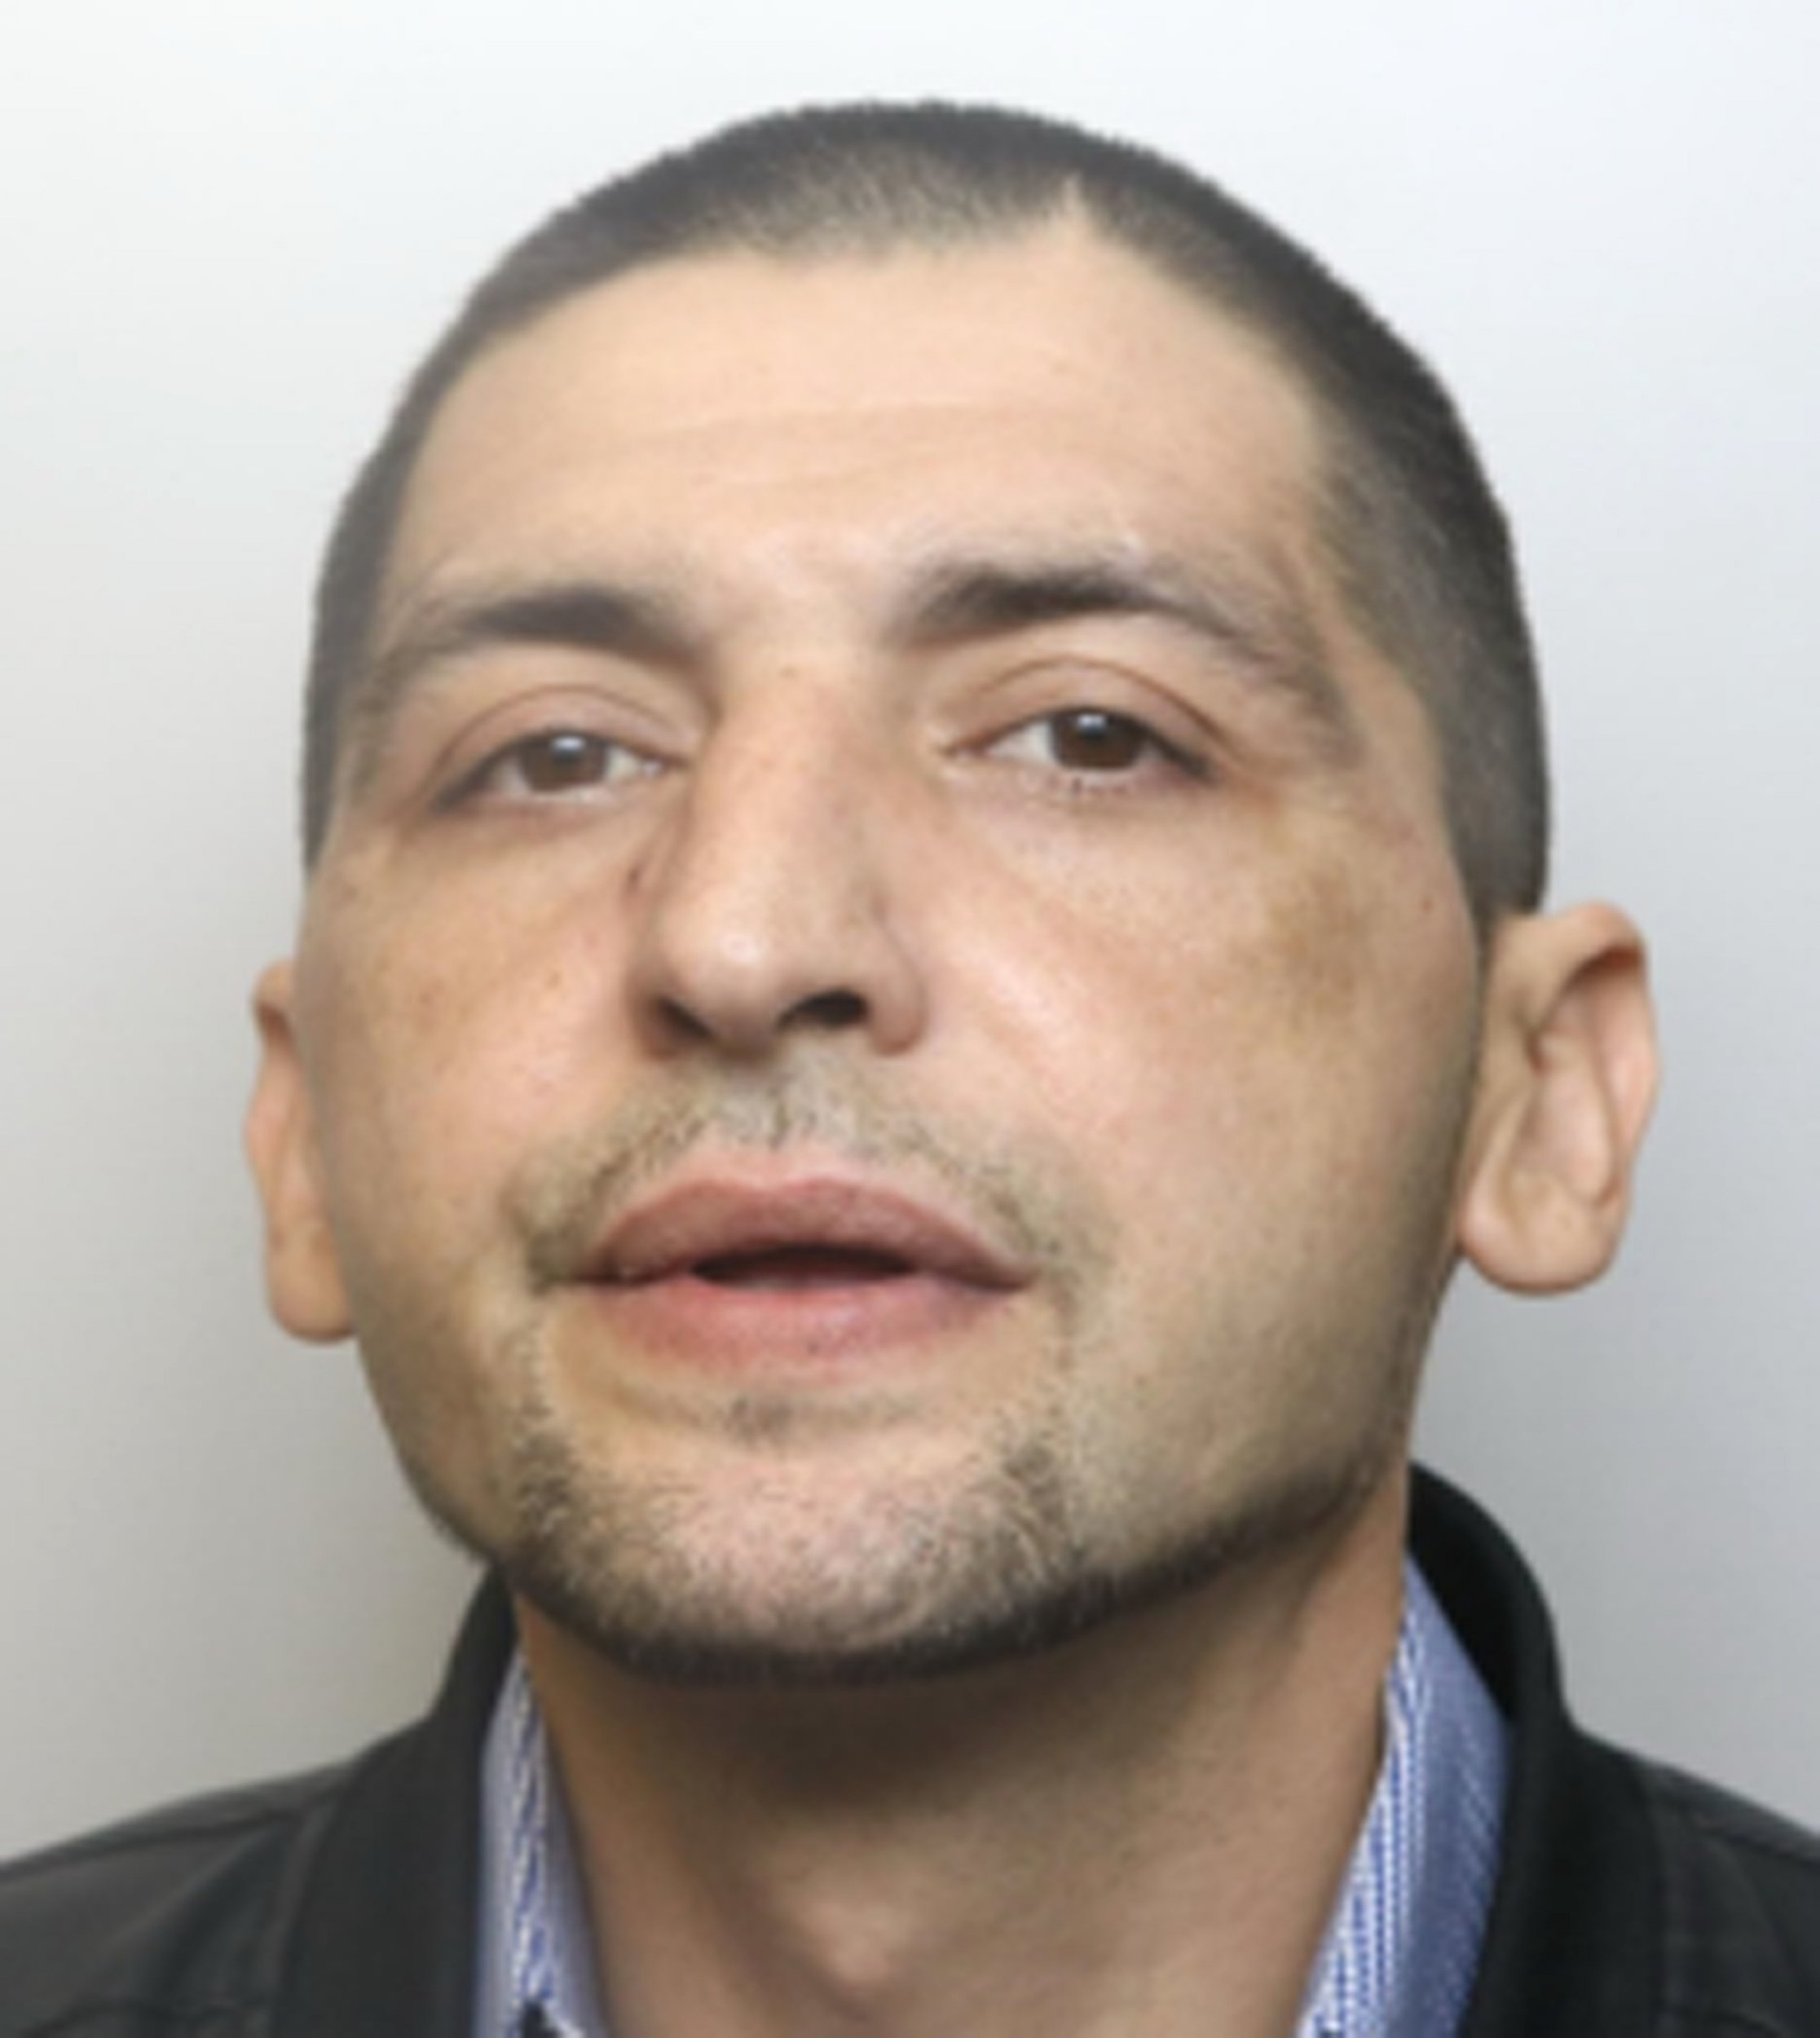 Undated handout photo issued by Derbyshire Police of Artur Waszkiewicz who has been convicted of killing a frail 100-year-old widow in a street robbery. PRESS ASSOCIATION Photo. Issue date: Wednesday February 13, 2019. Self-confessed heroin addict Artur Waszkiewicz knocked Zofija Kaczan to the floor, took her handbag and left her to bleed in the middle of the road as she made her way to church on May 28 last year. See PA story COURTS Derby. Photo credit should read: Derbyshire Police/PA Wire NOTE TO EDITORS: This handout photo may only be used in for editorial reporting purposes for the contemporaneous illustration of events, things or the people in the image or facts mentioned in the caption. Reuse of the picture may require further permission from the copyright holder.